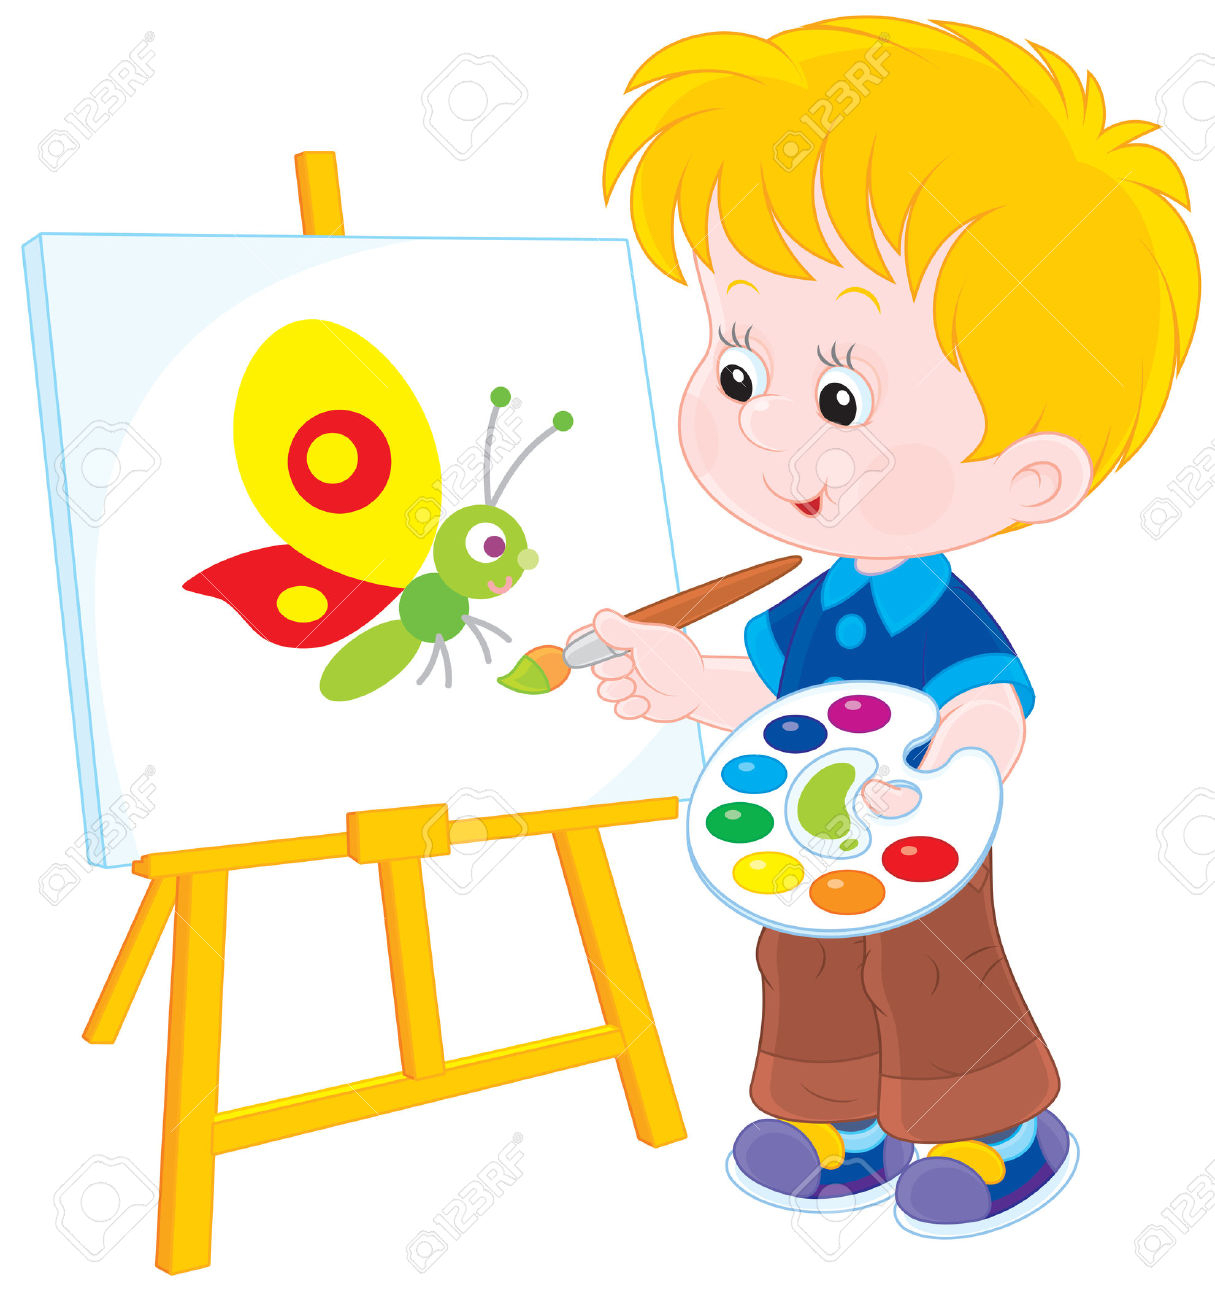 Clipart child drawing.